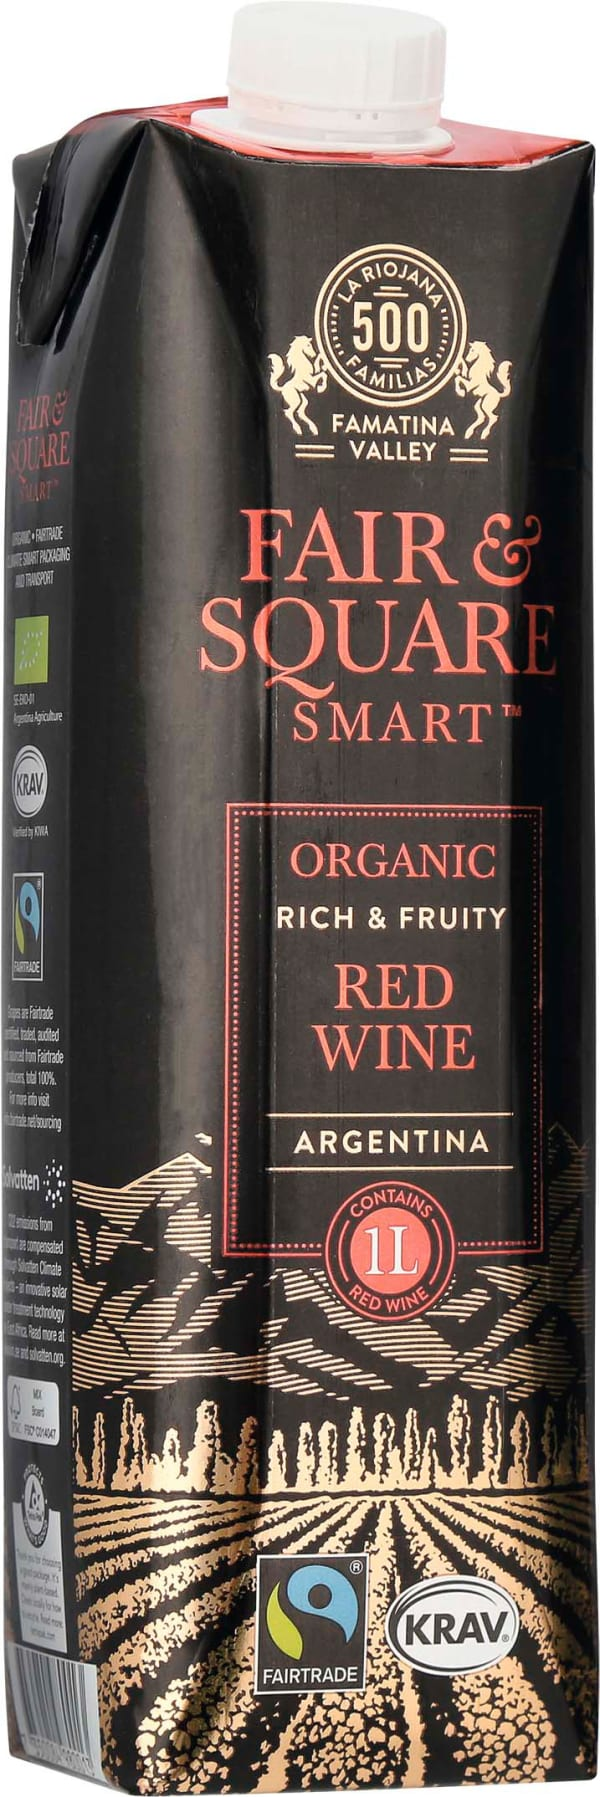 Fair & Square Red 2017 carton package